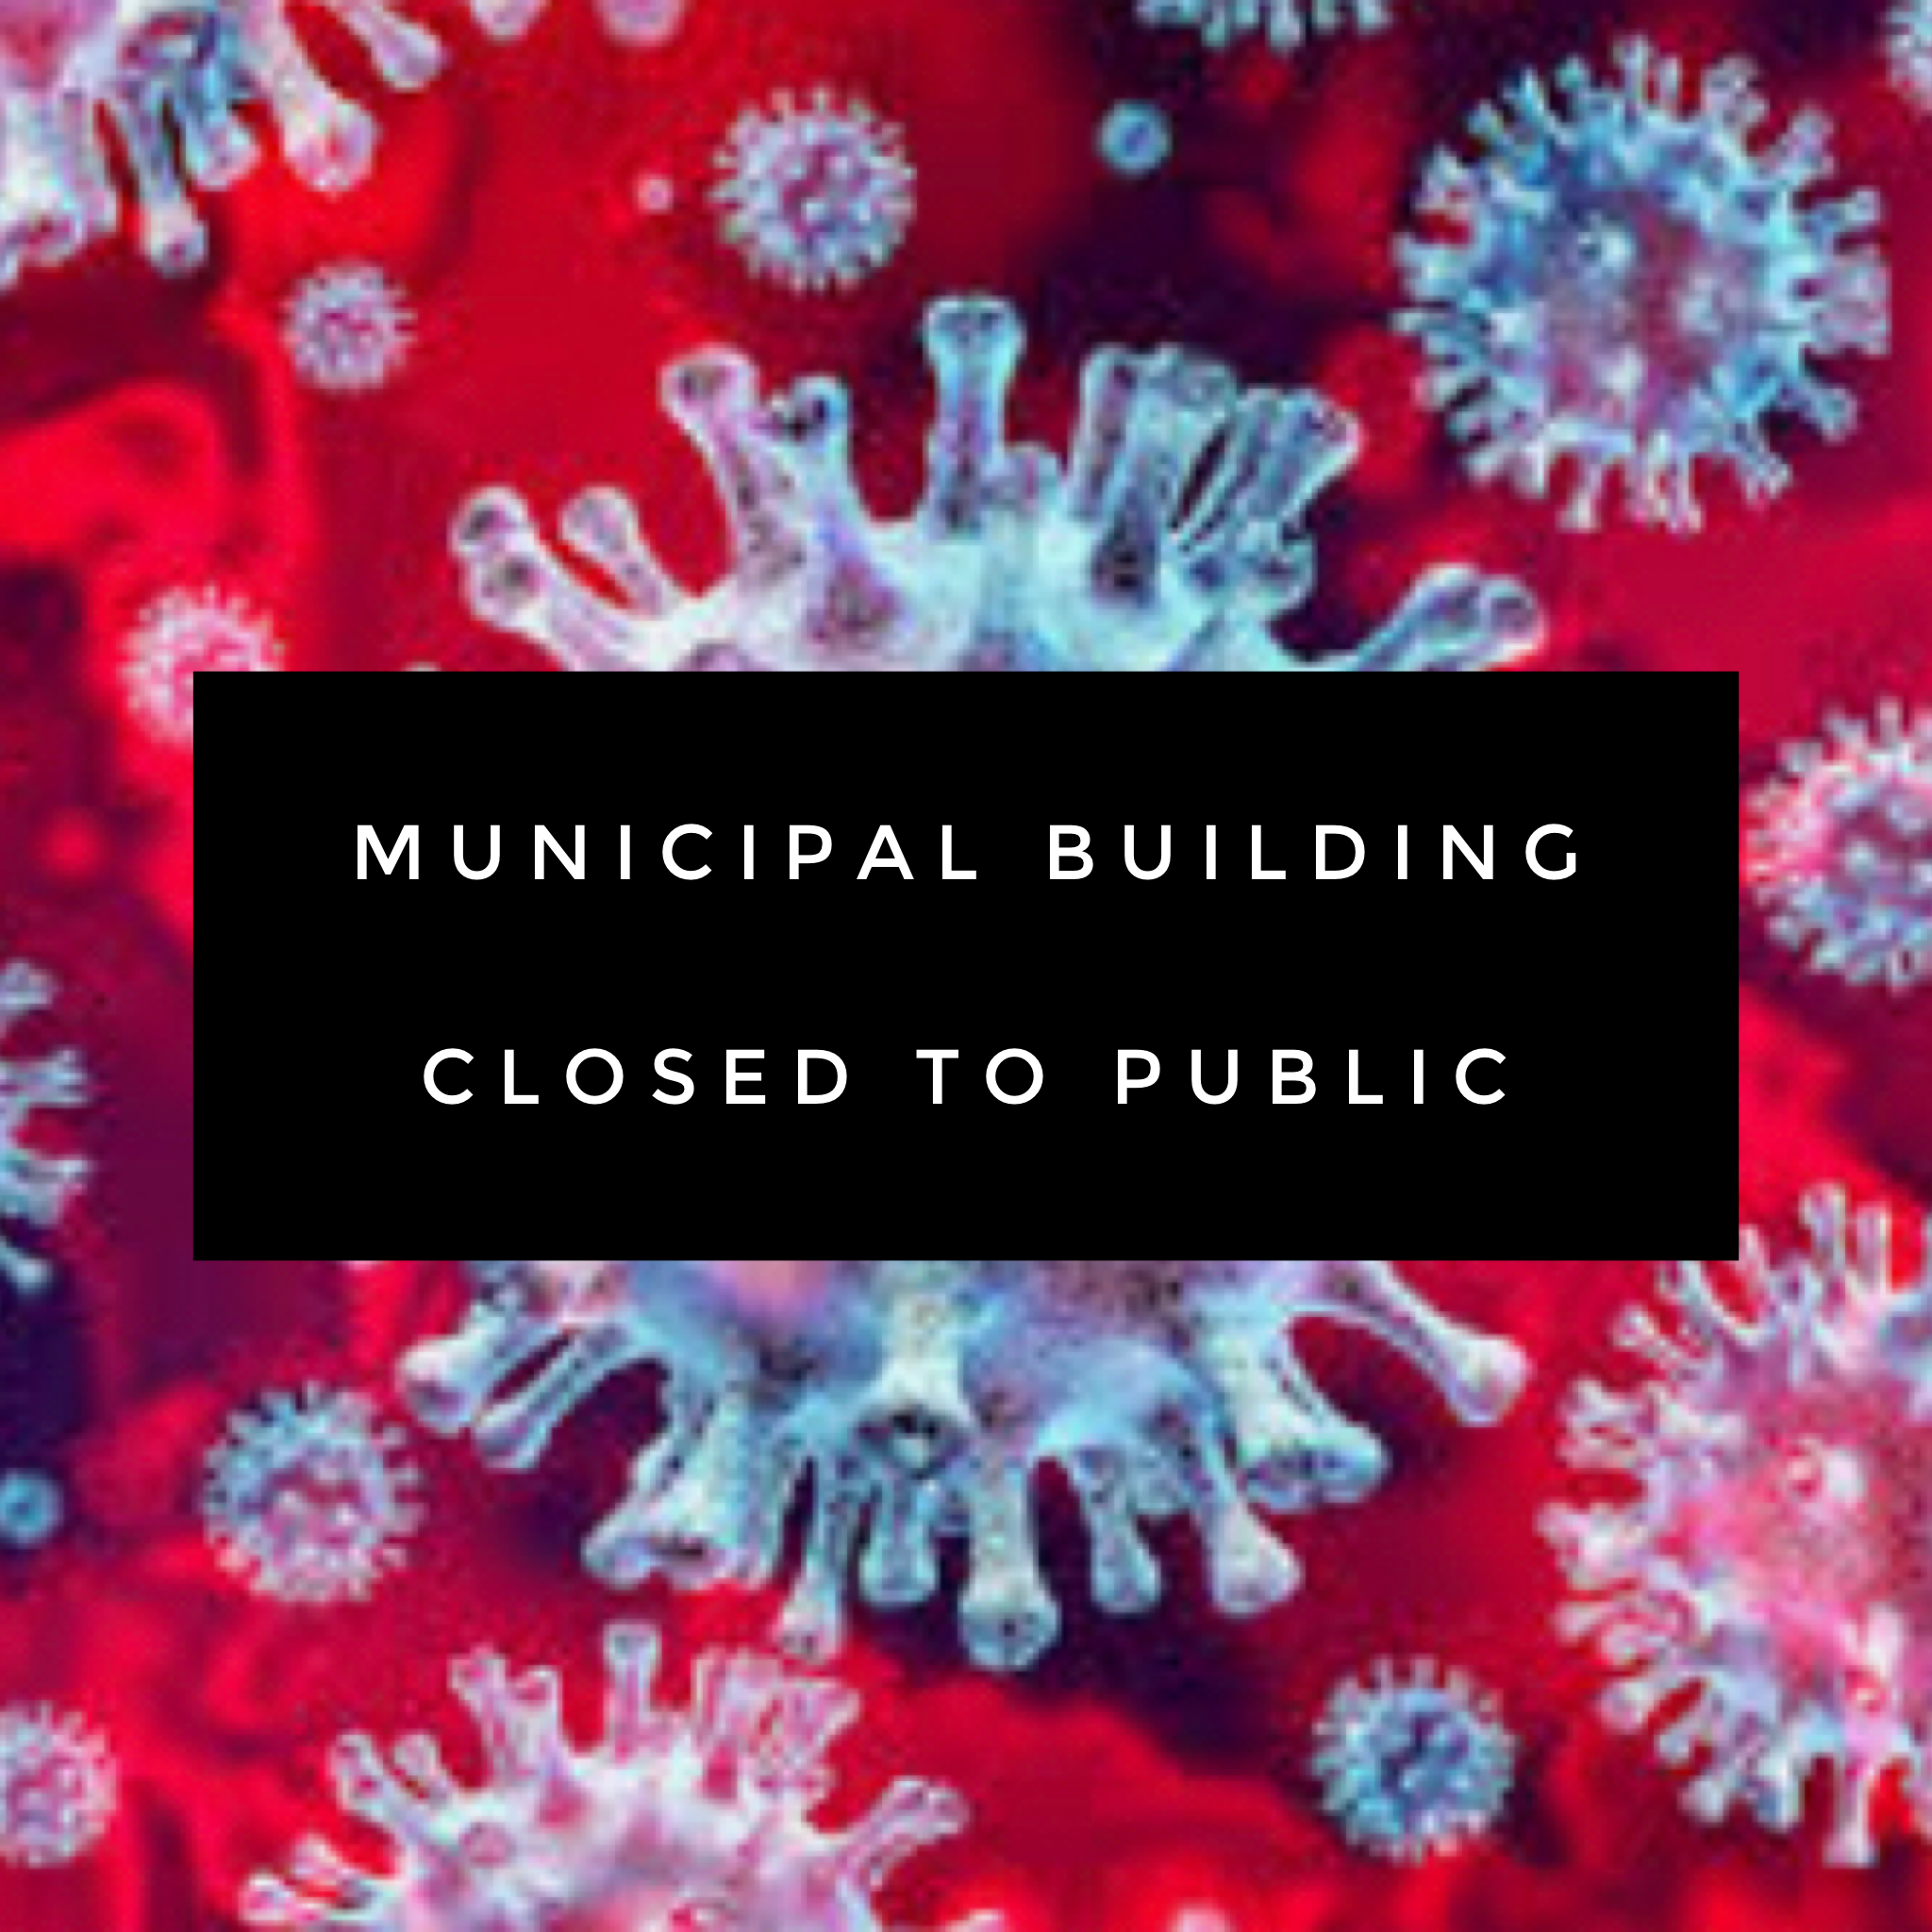 Municipal Building Closed to Public